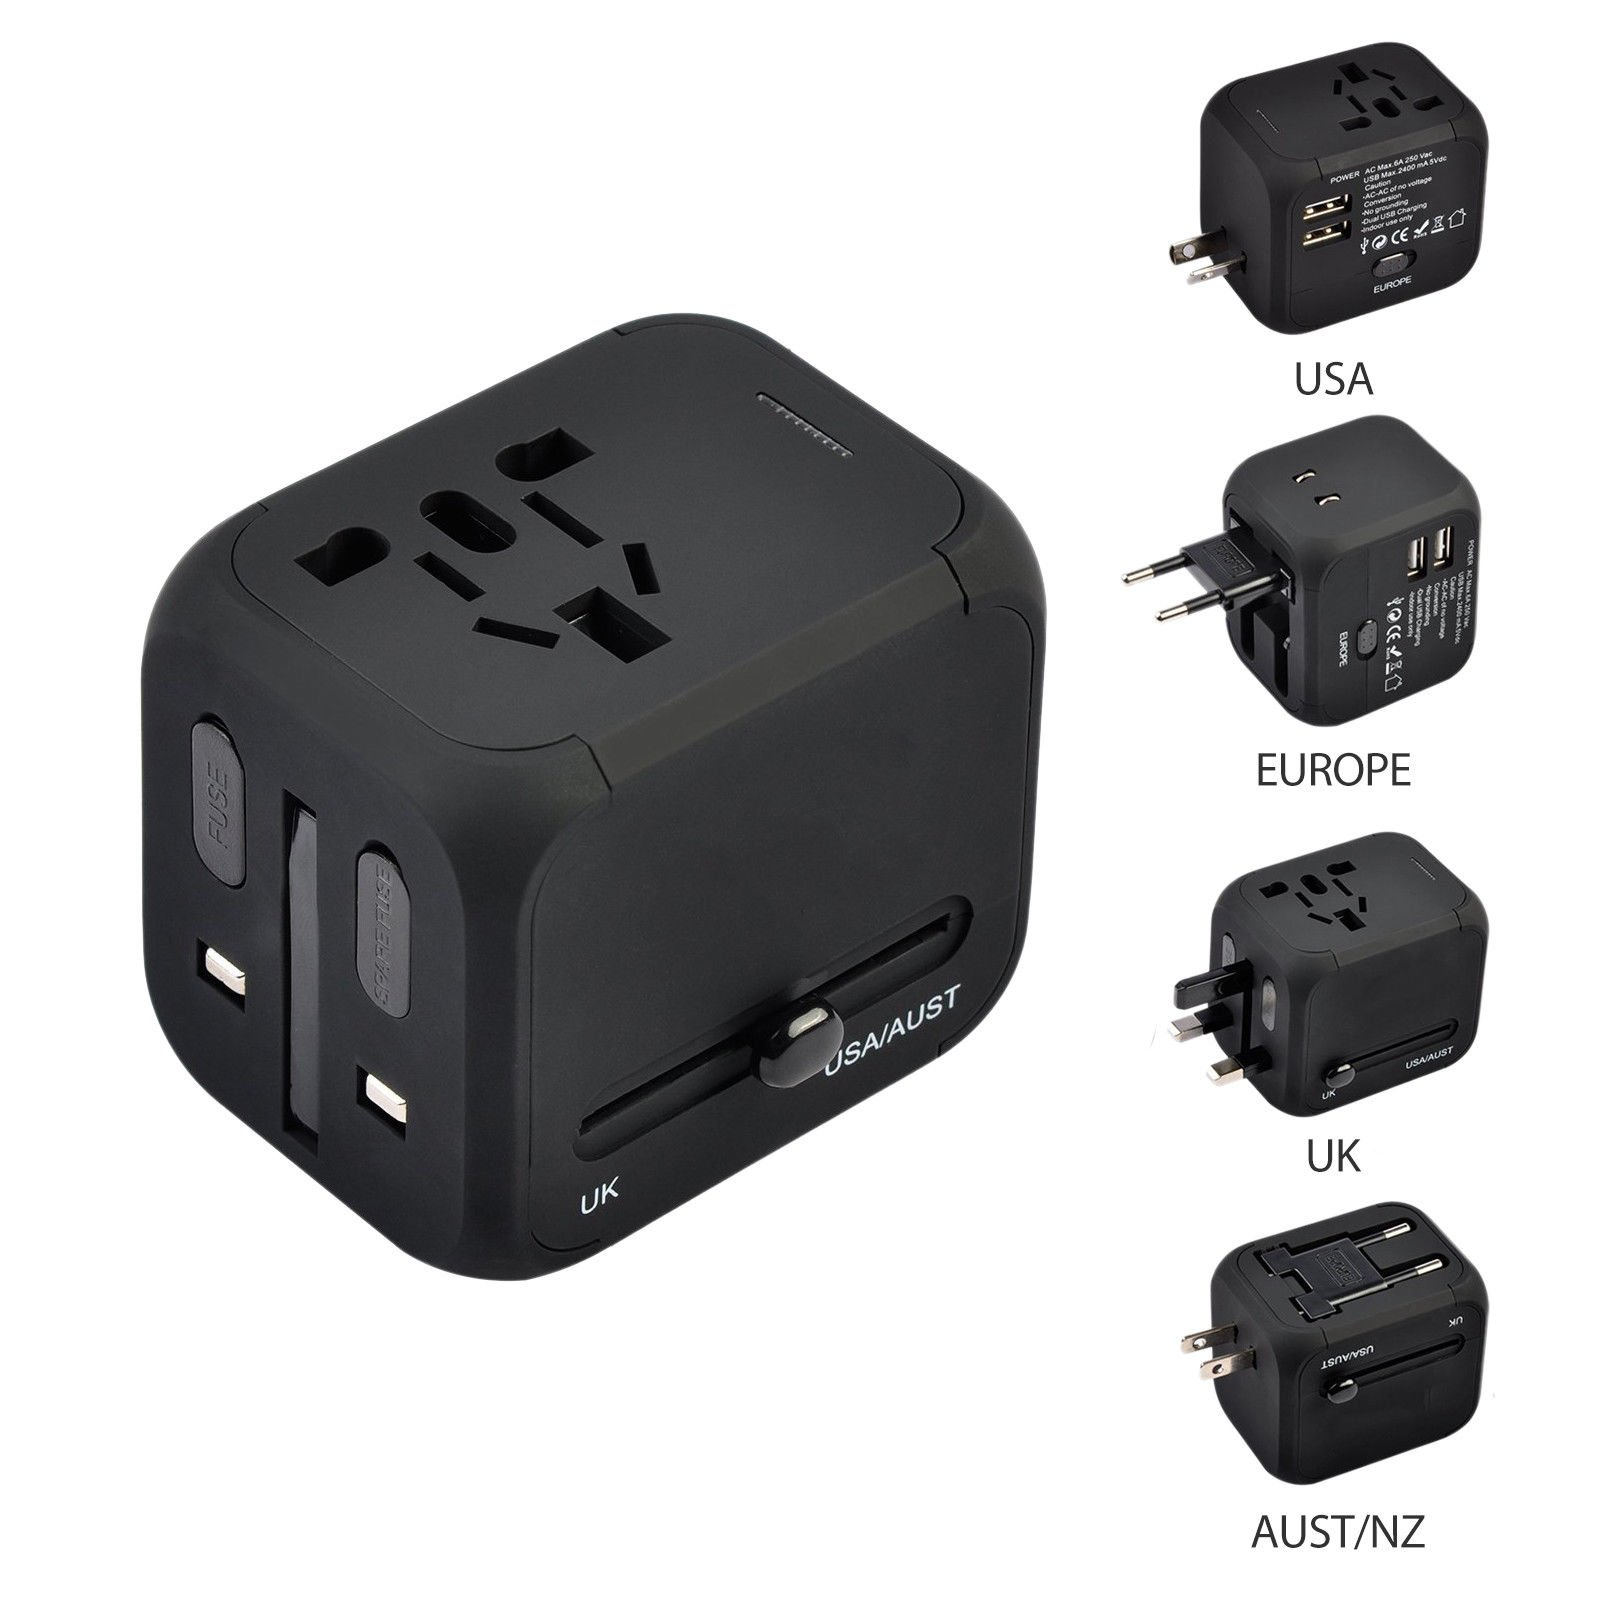 FahanTech Universal Travel Adapter, All-in-one Power Adapter Dual USB Charging Ports (Max 2.4A), Covers 150 Countries (Black)